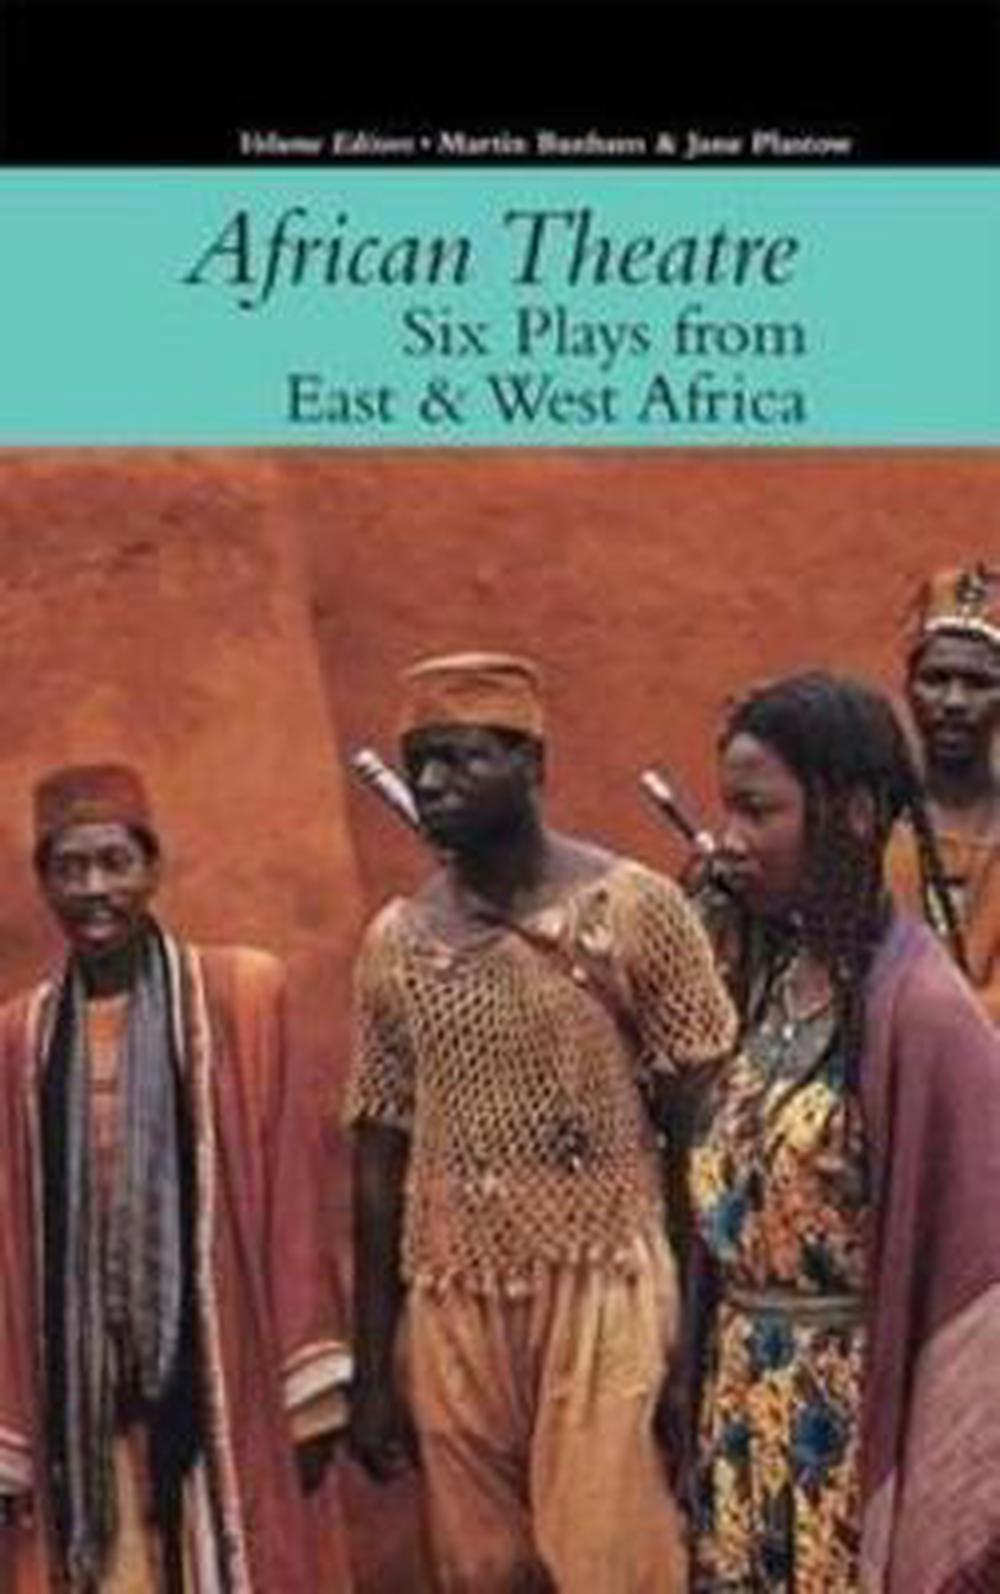 African Theatre 16: Six Plays from East & West Africa Hardcover Book Free Shippi